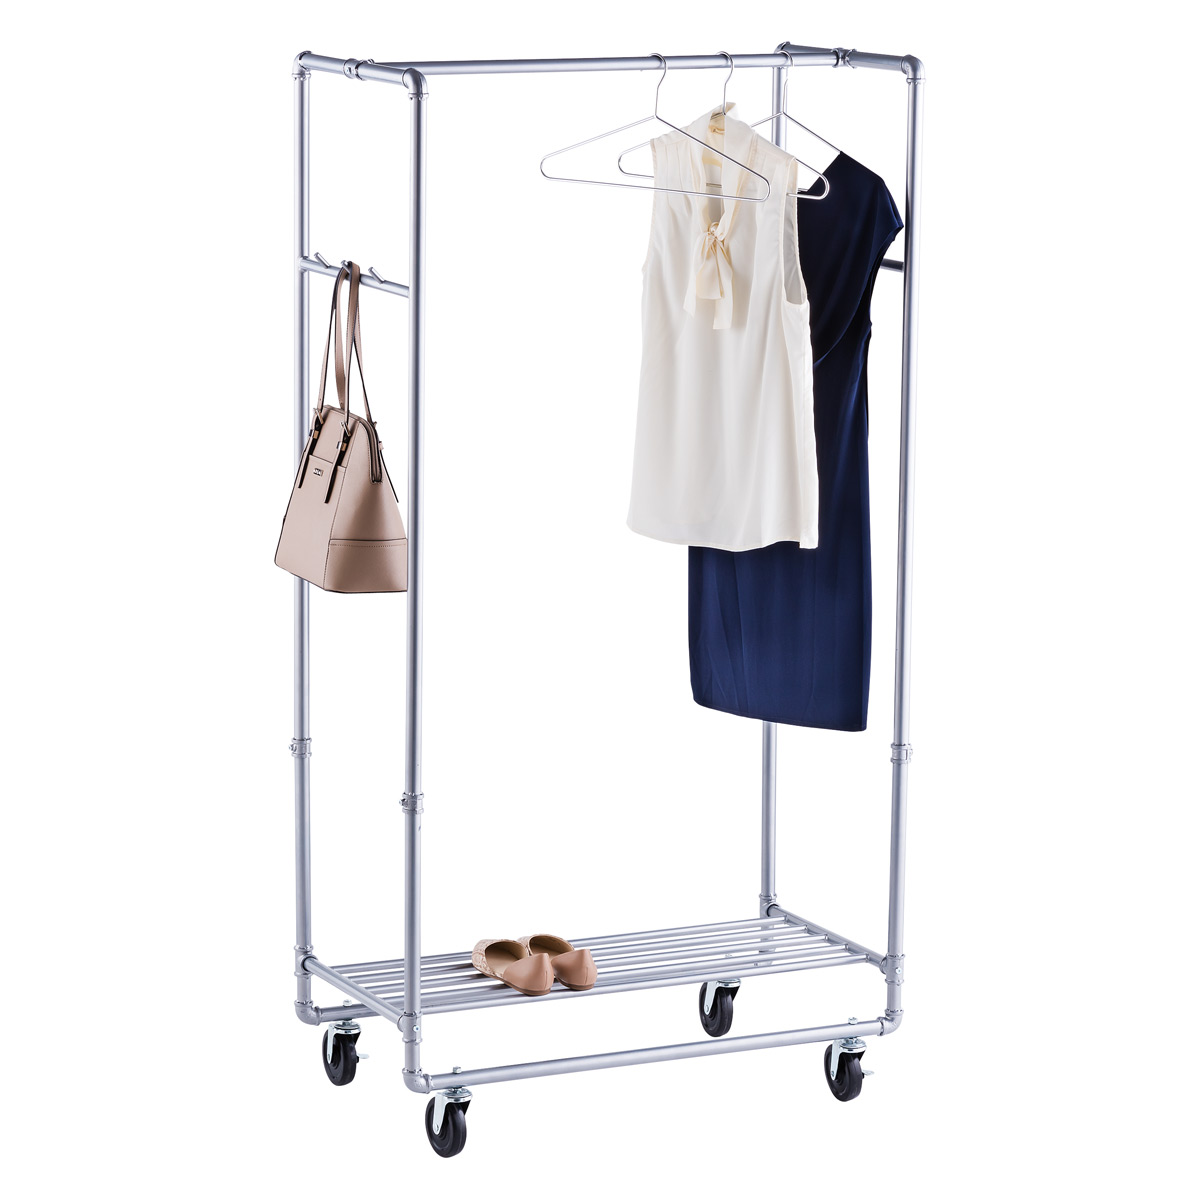 Le Meilleur Industrial Pipe Clothes Rack The Container Store Ce Mois Ci